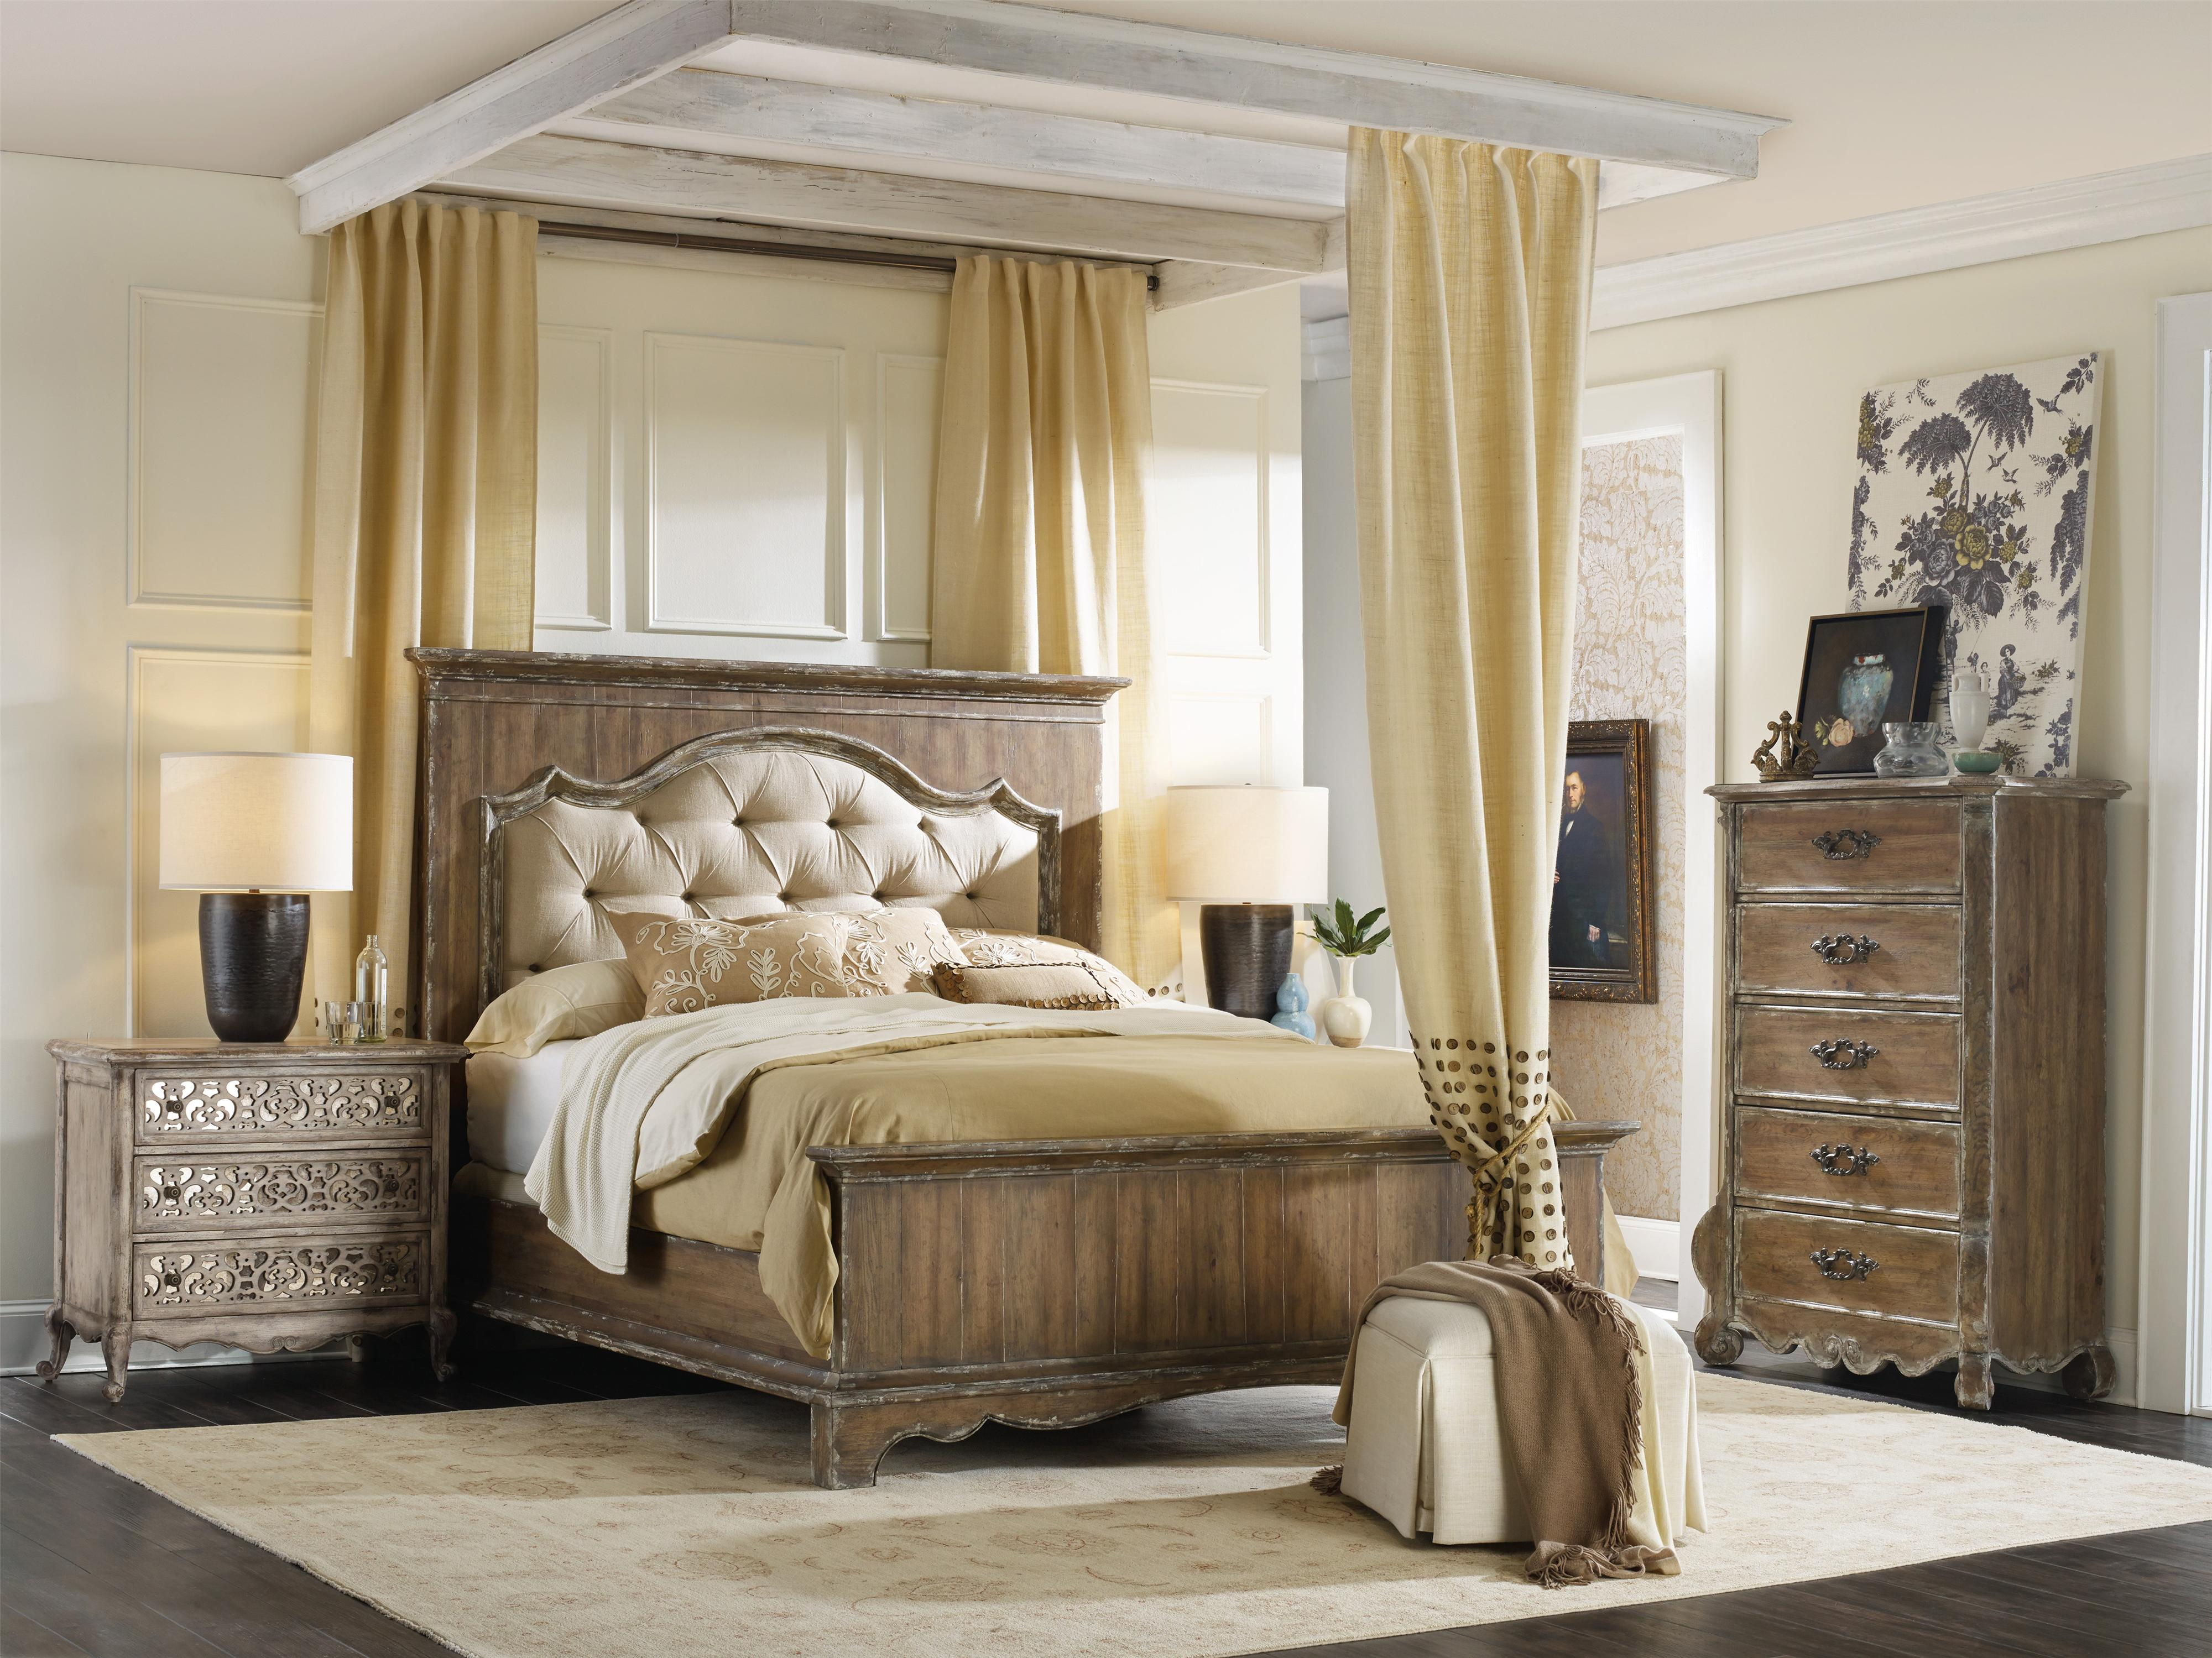 Chatelet Queen Bedroom Group by Hooker Furniture at Alison Craig Home Furnishings